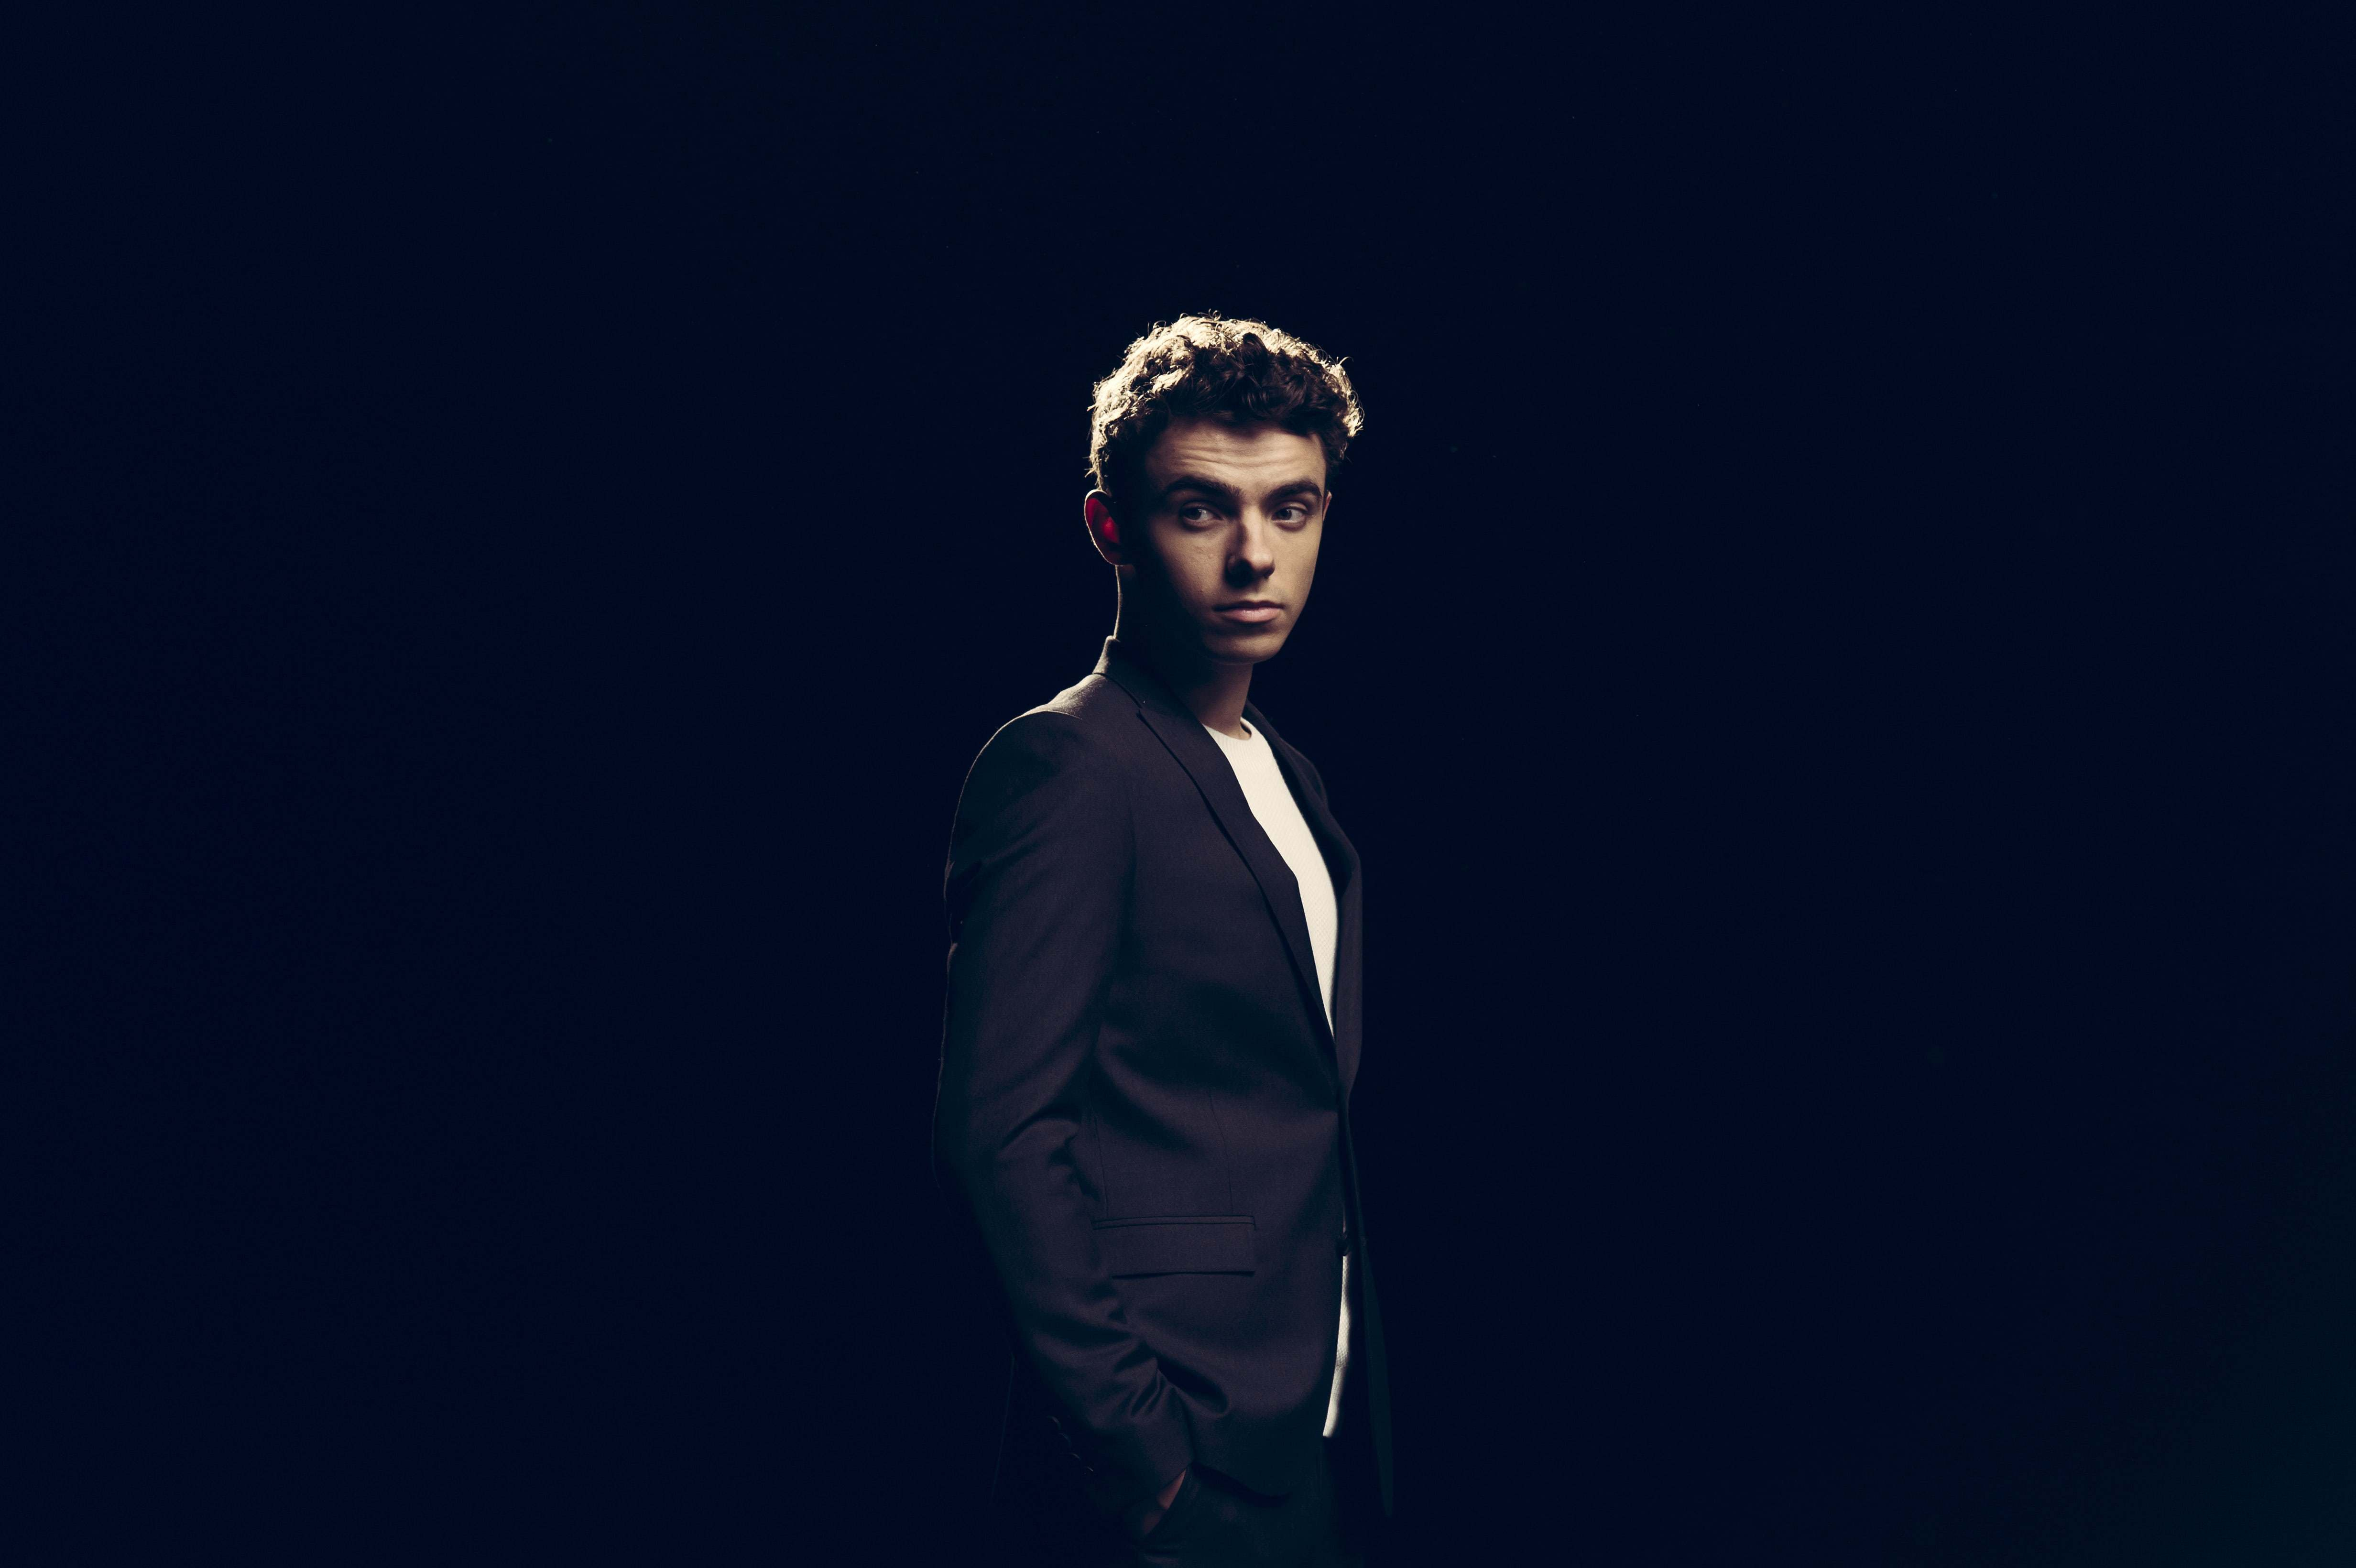 Nathan Sykes Images